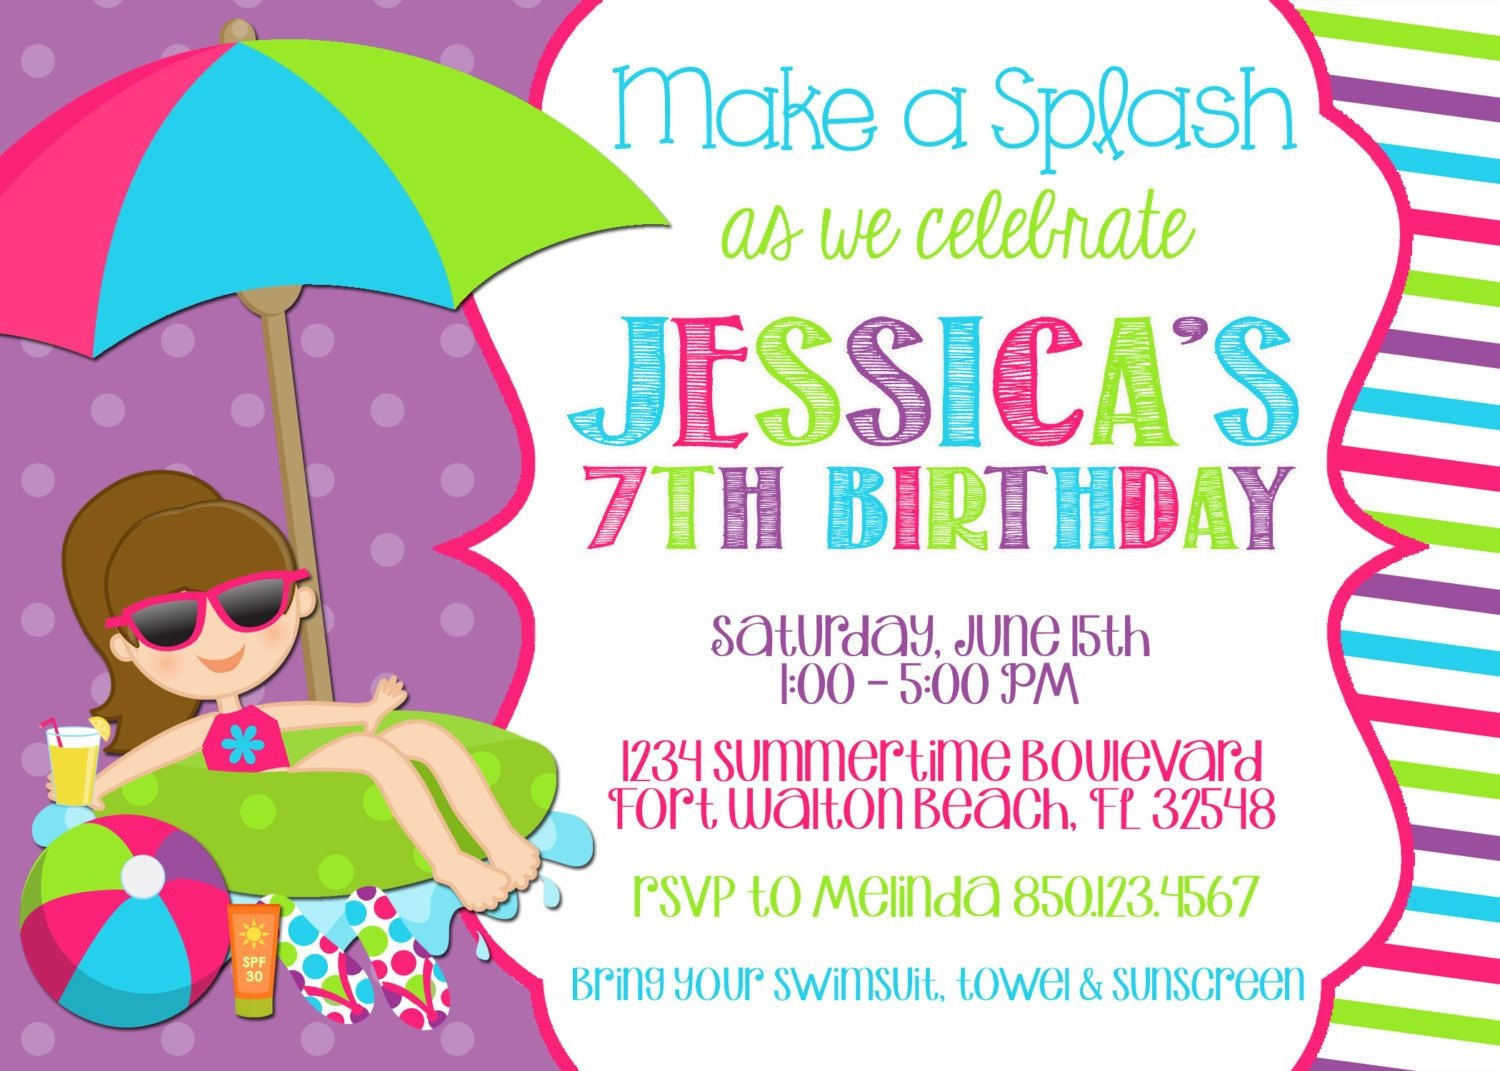 Best Pool Party Invitation Ideas | Invitations Card - Free Printable Pool Party Birthday Invitations